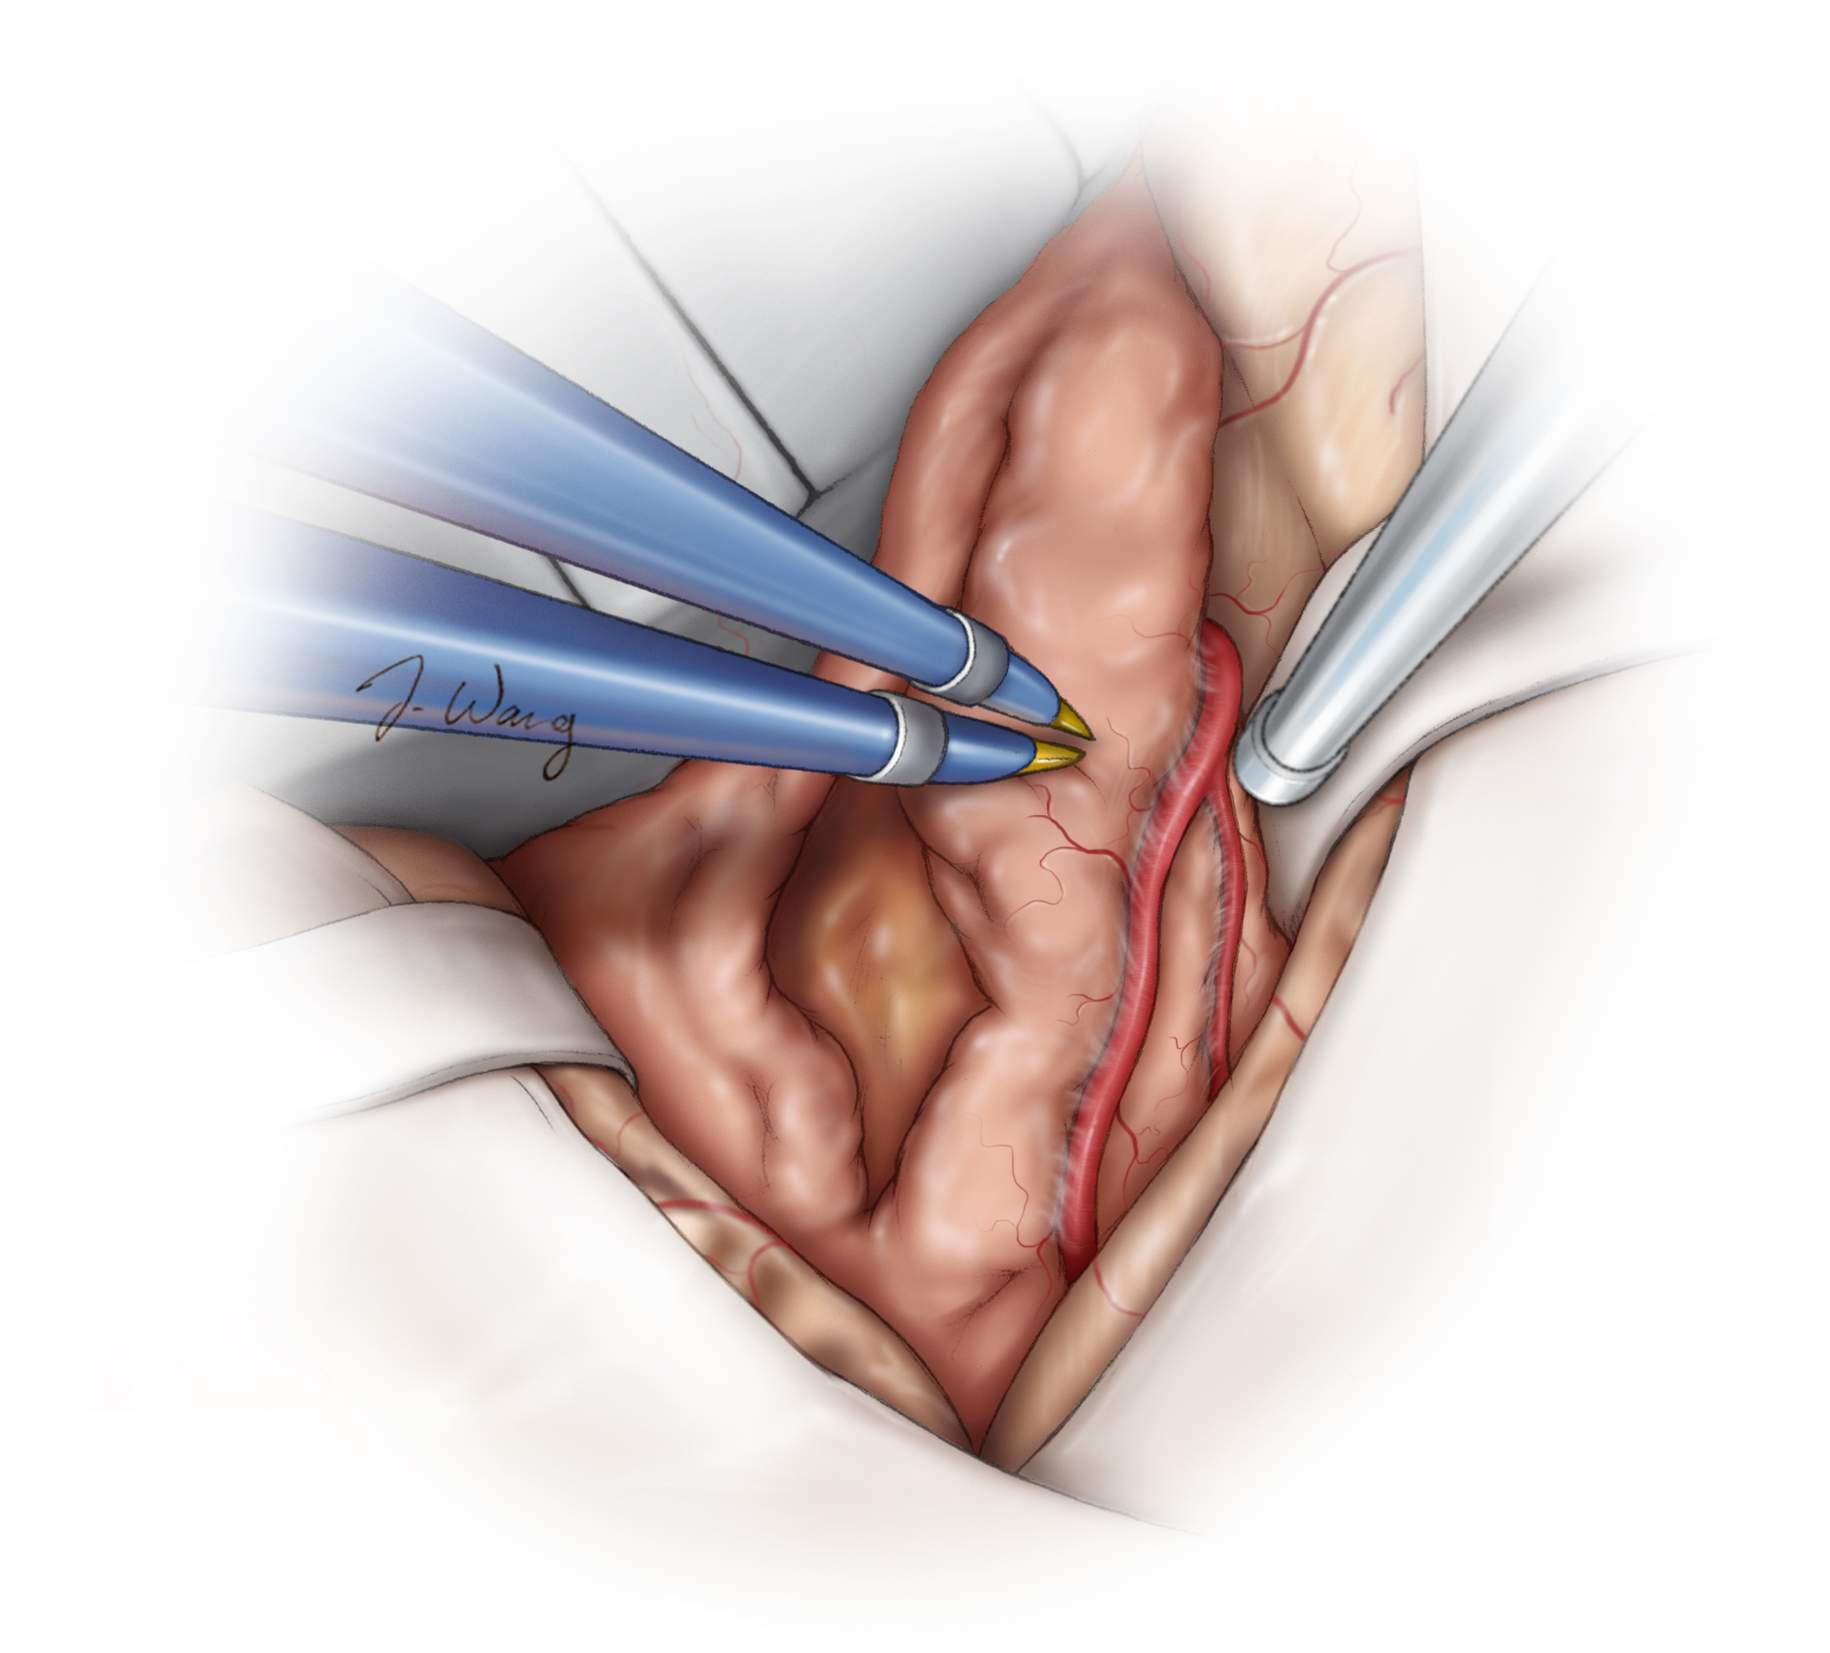 Figure 10: At this juncture, after some tumor debulking to create more working space, I further split the distal aspect of Sylvian fissure and identify the M2 branches draped over the superior and posterior poles of the tumor capsule. I also gently mobilize the tumor capsule posteriorly along the sphenoid wing in an attempt to find or estimate the location of the ICA at the skull base.  These latter two maneuvers help me approximate the route of the MCA branches, including the M1, along the medial tumor capsule-my blind spot.